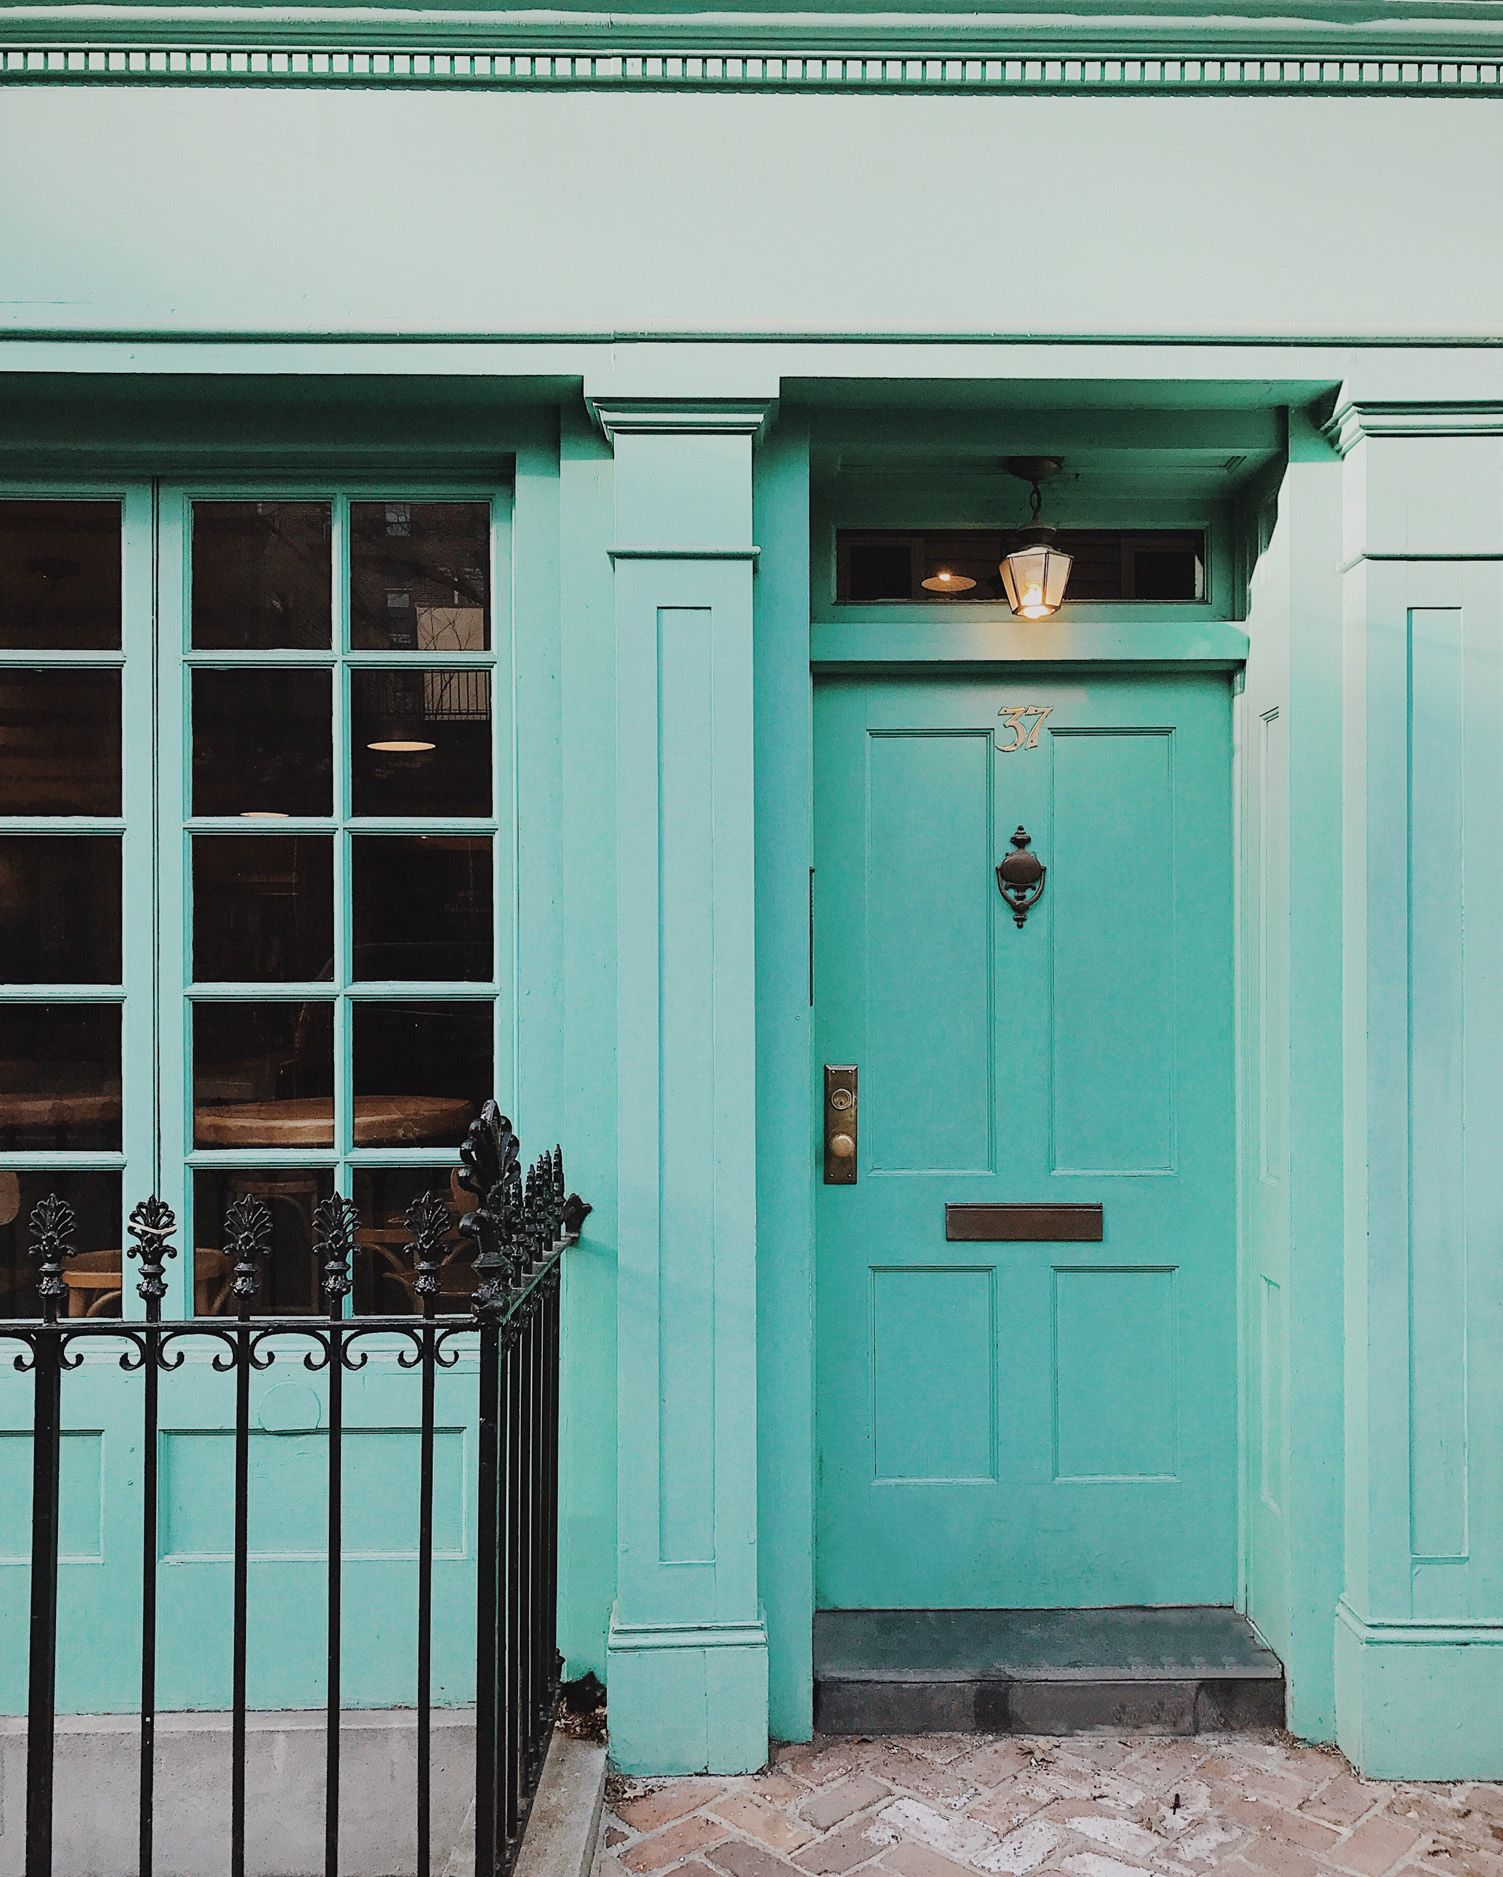 This Front Door Looks Like It Could Be In London But Is Actually Brooklyn The Gorgeous Blue Green Hue On A Made Me Smile As I My Way